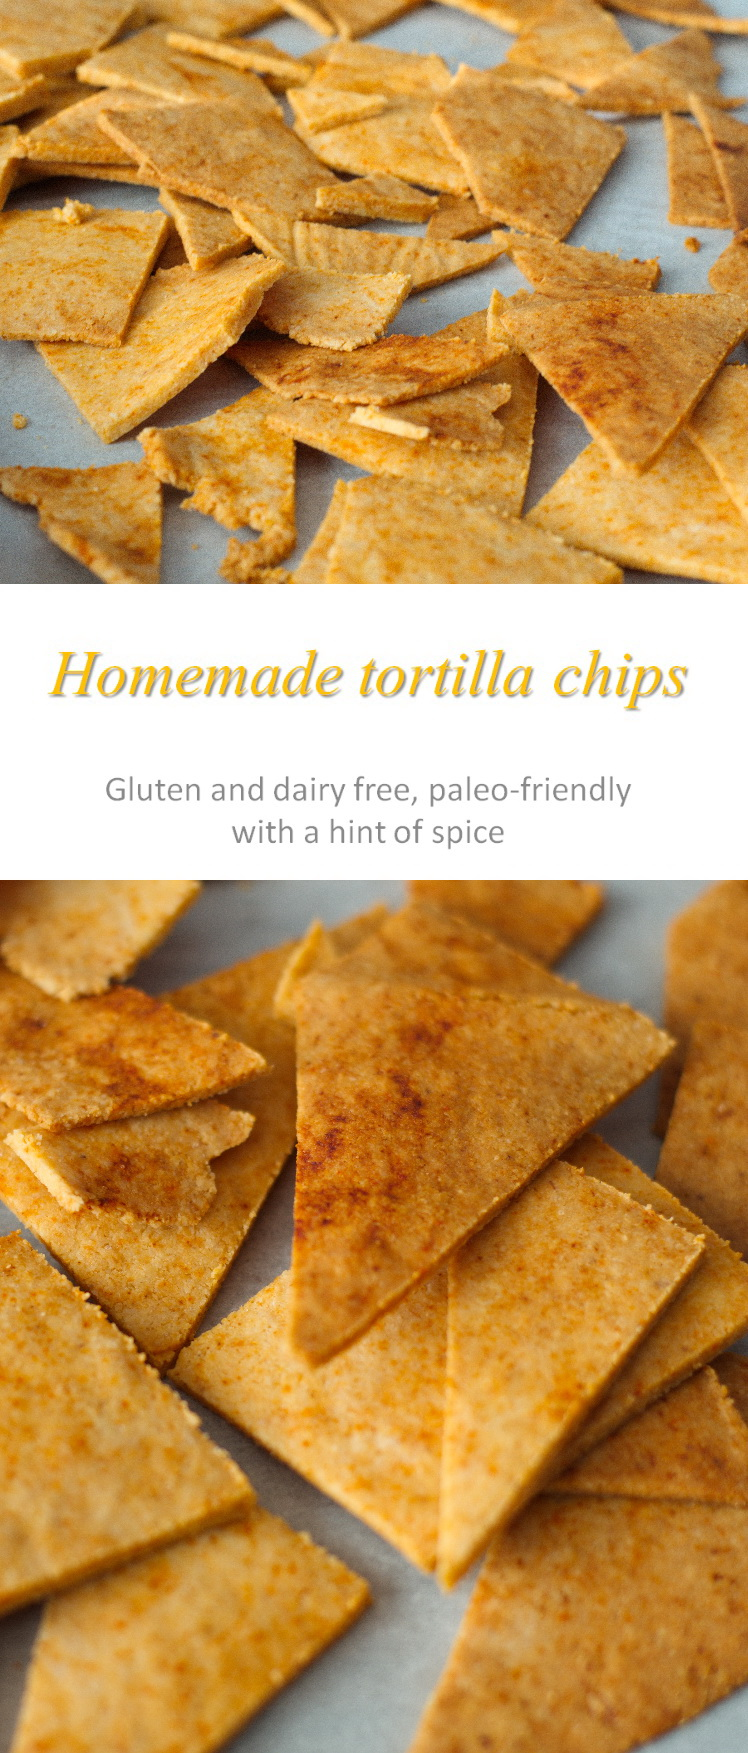 Healthy tortilla chips that are grain-free, gluten-free and Paleo-friendly. Use for dipping in salsa, as chips for nachos or just in soups as you please! #tortillachips